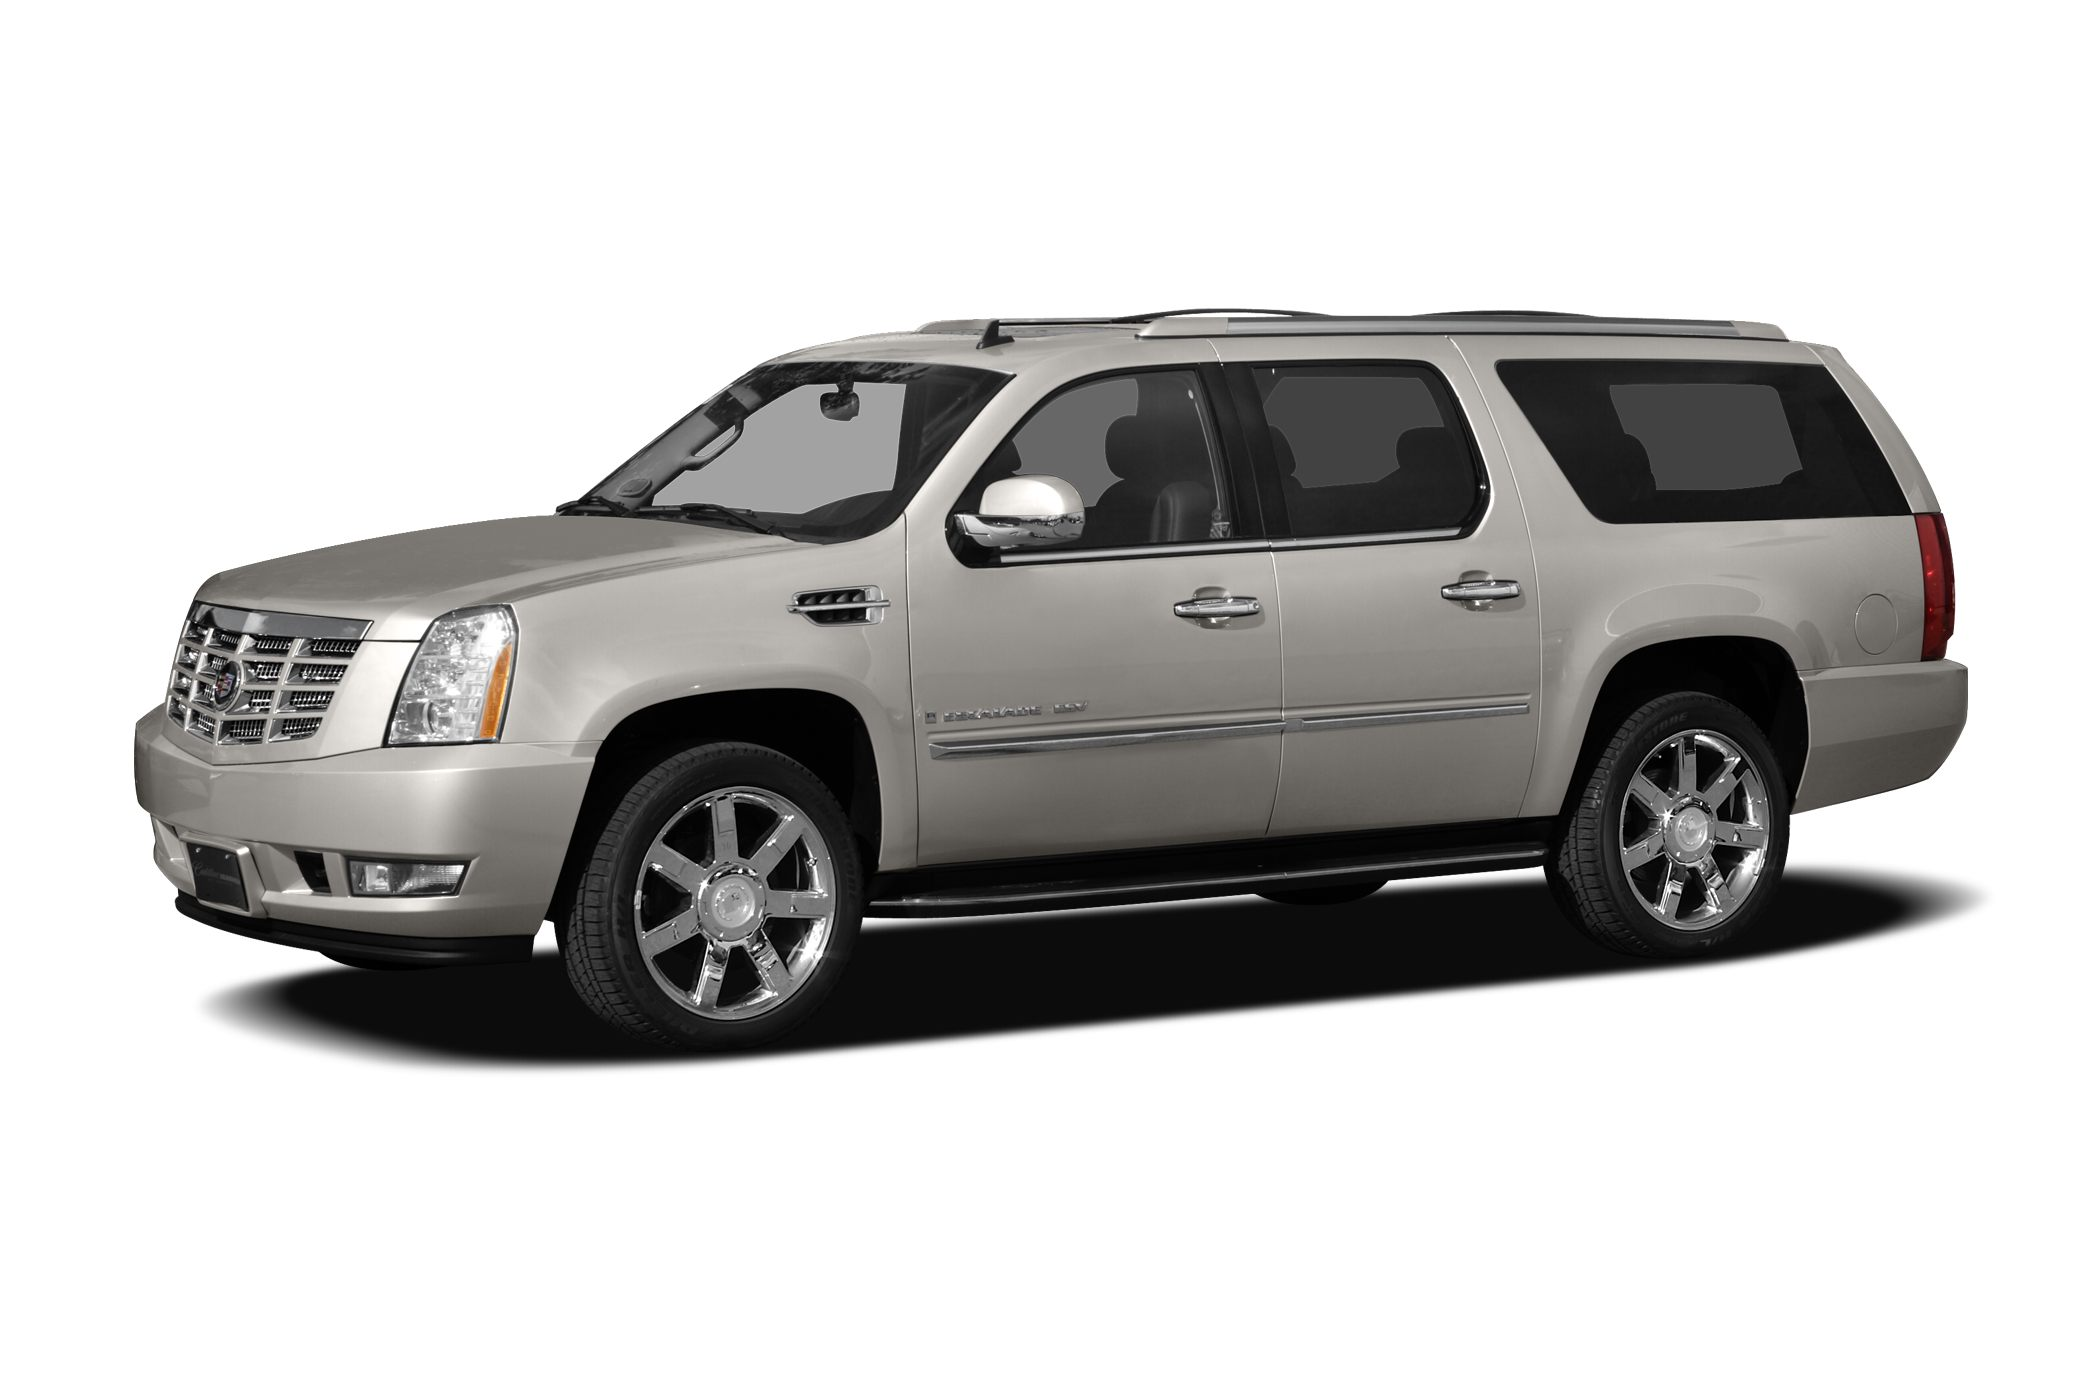 2007 Cadillac Escalade ESV SUV for sale in Houma for $27,900 with 76,890 miles.